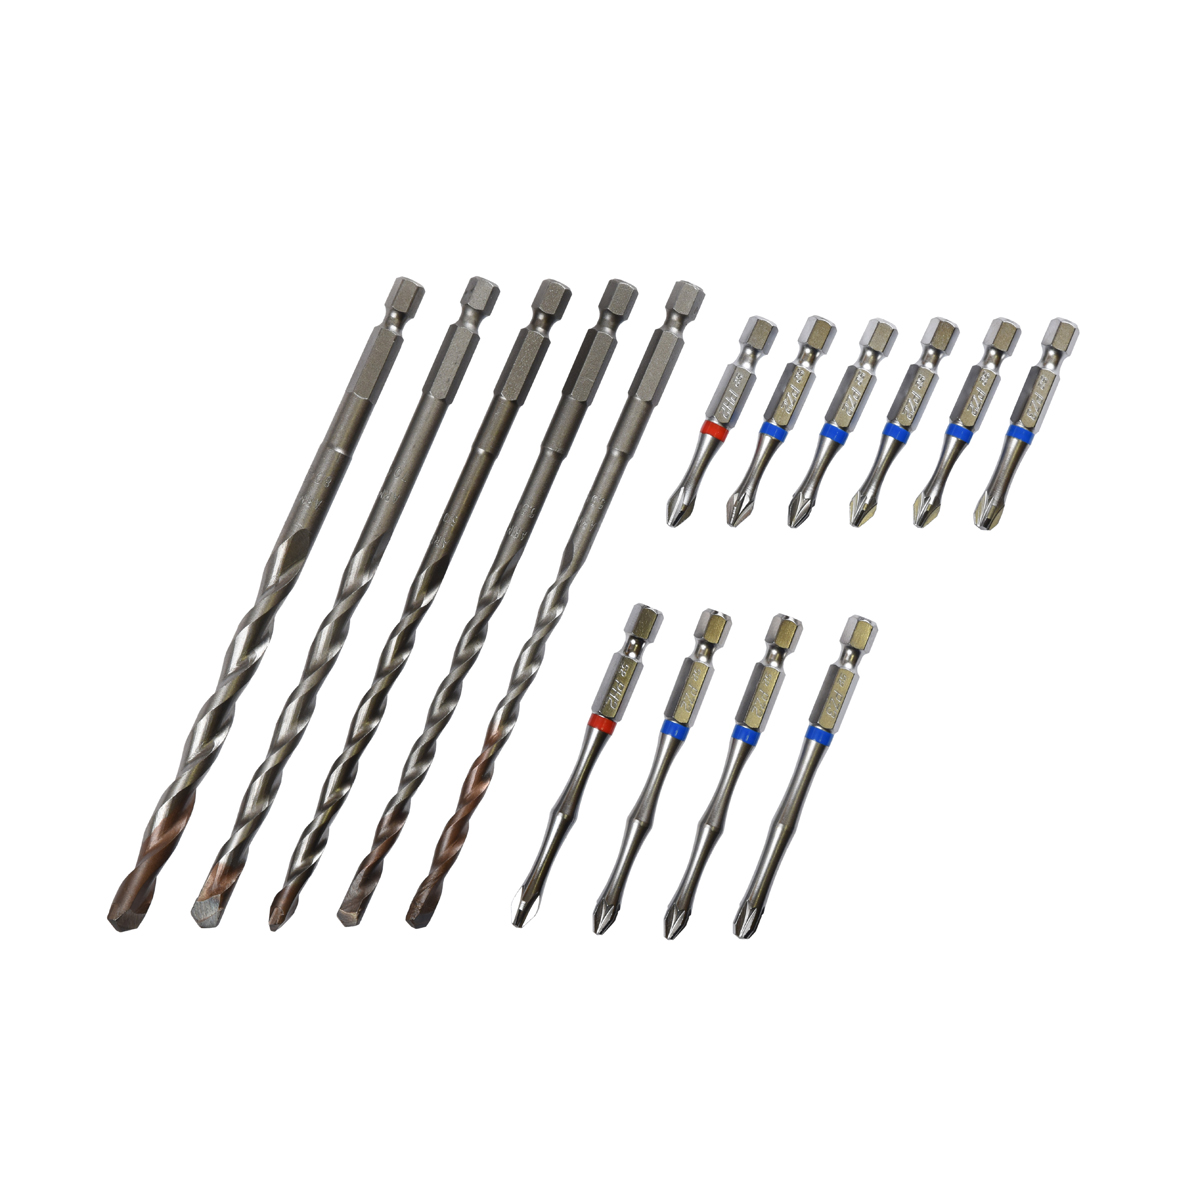 15 Piece Masonry Fixing Installation Set